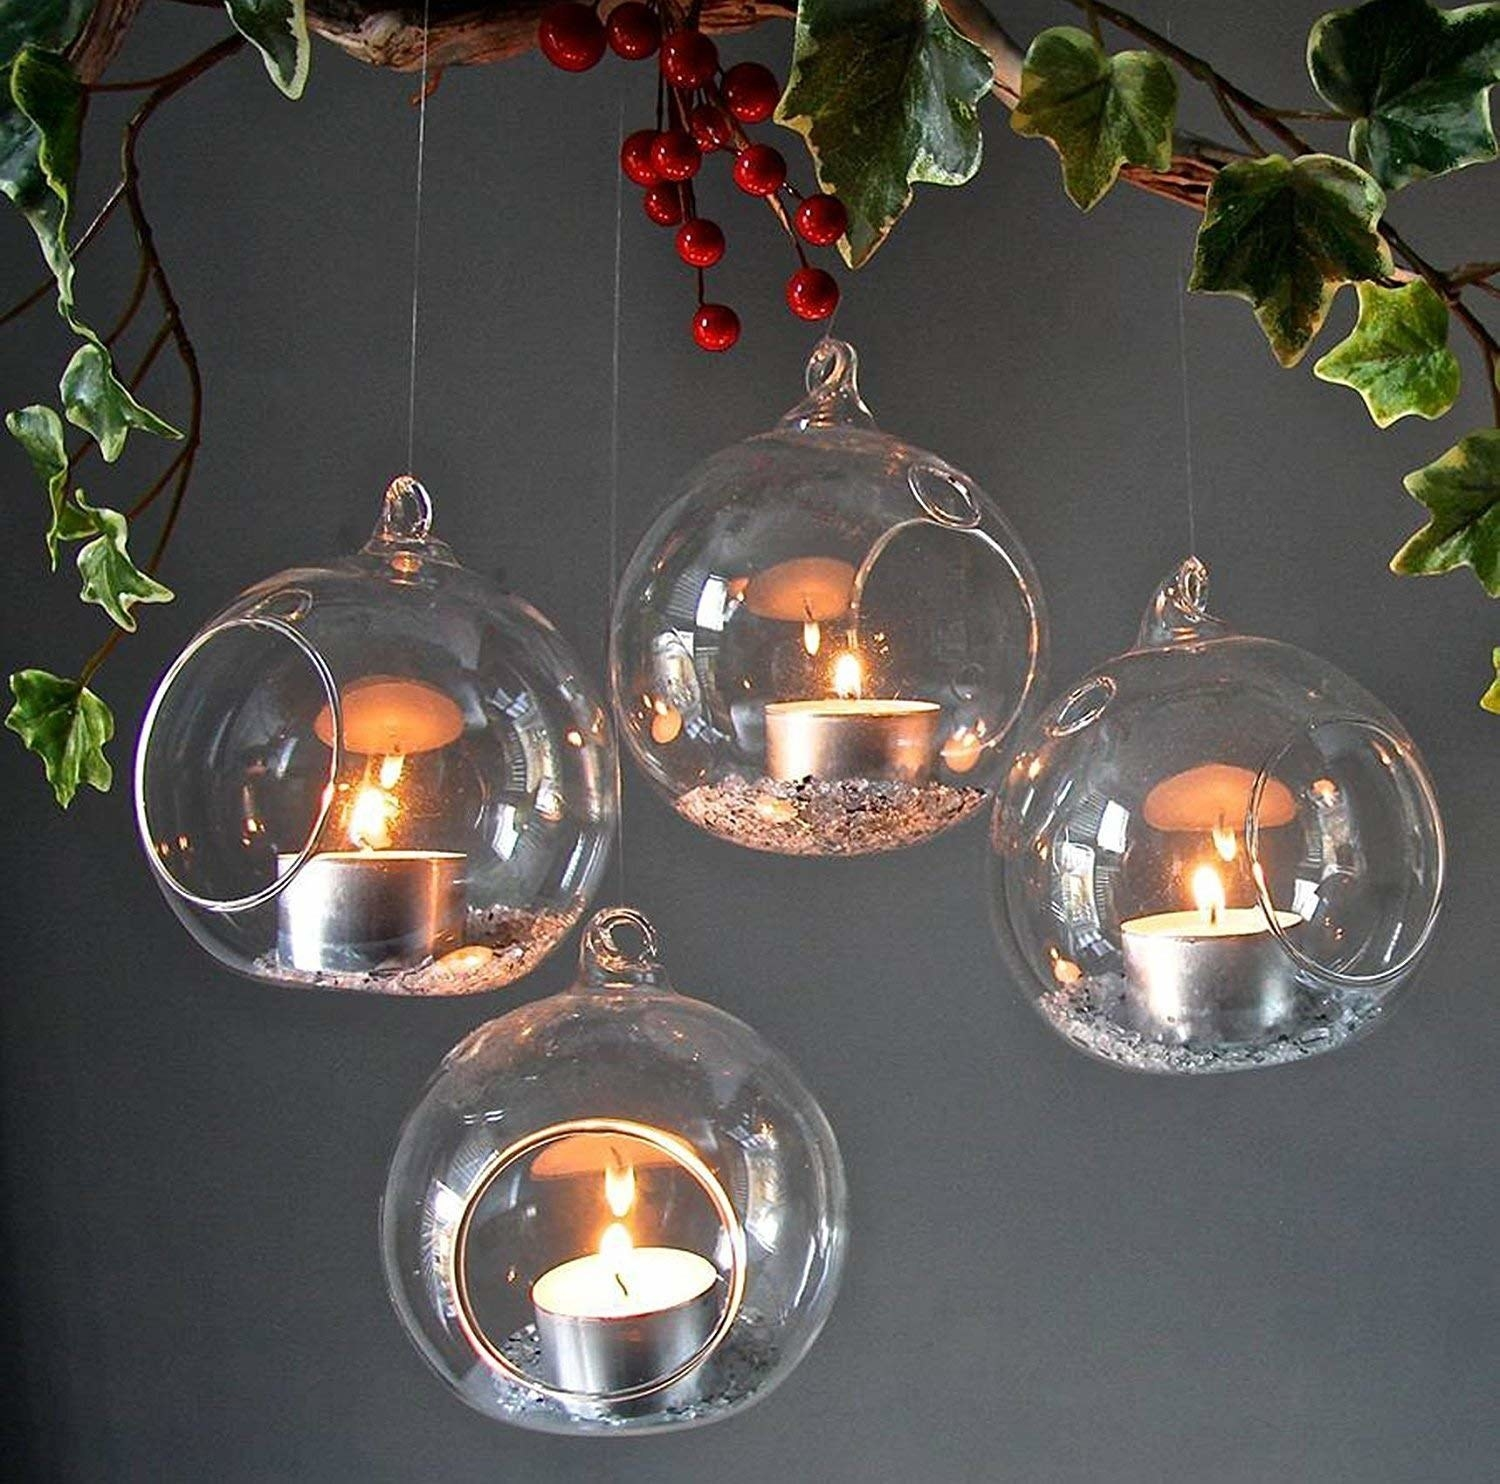 The glass holders used to house tealight candles and grey sand.